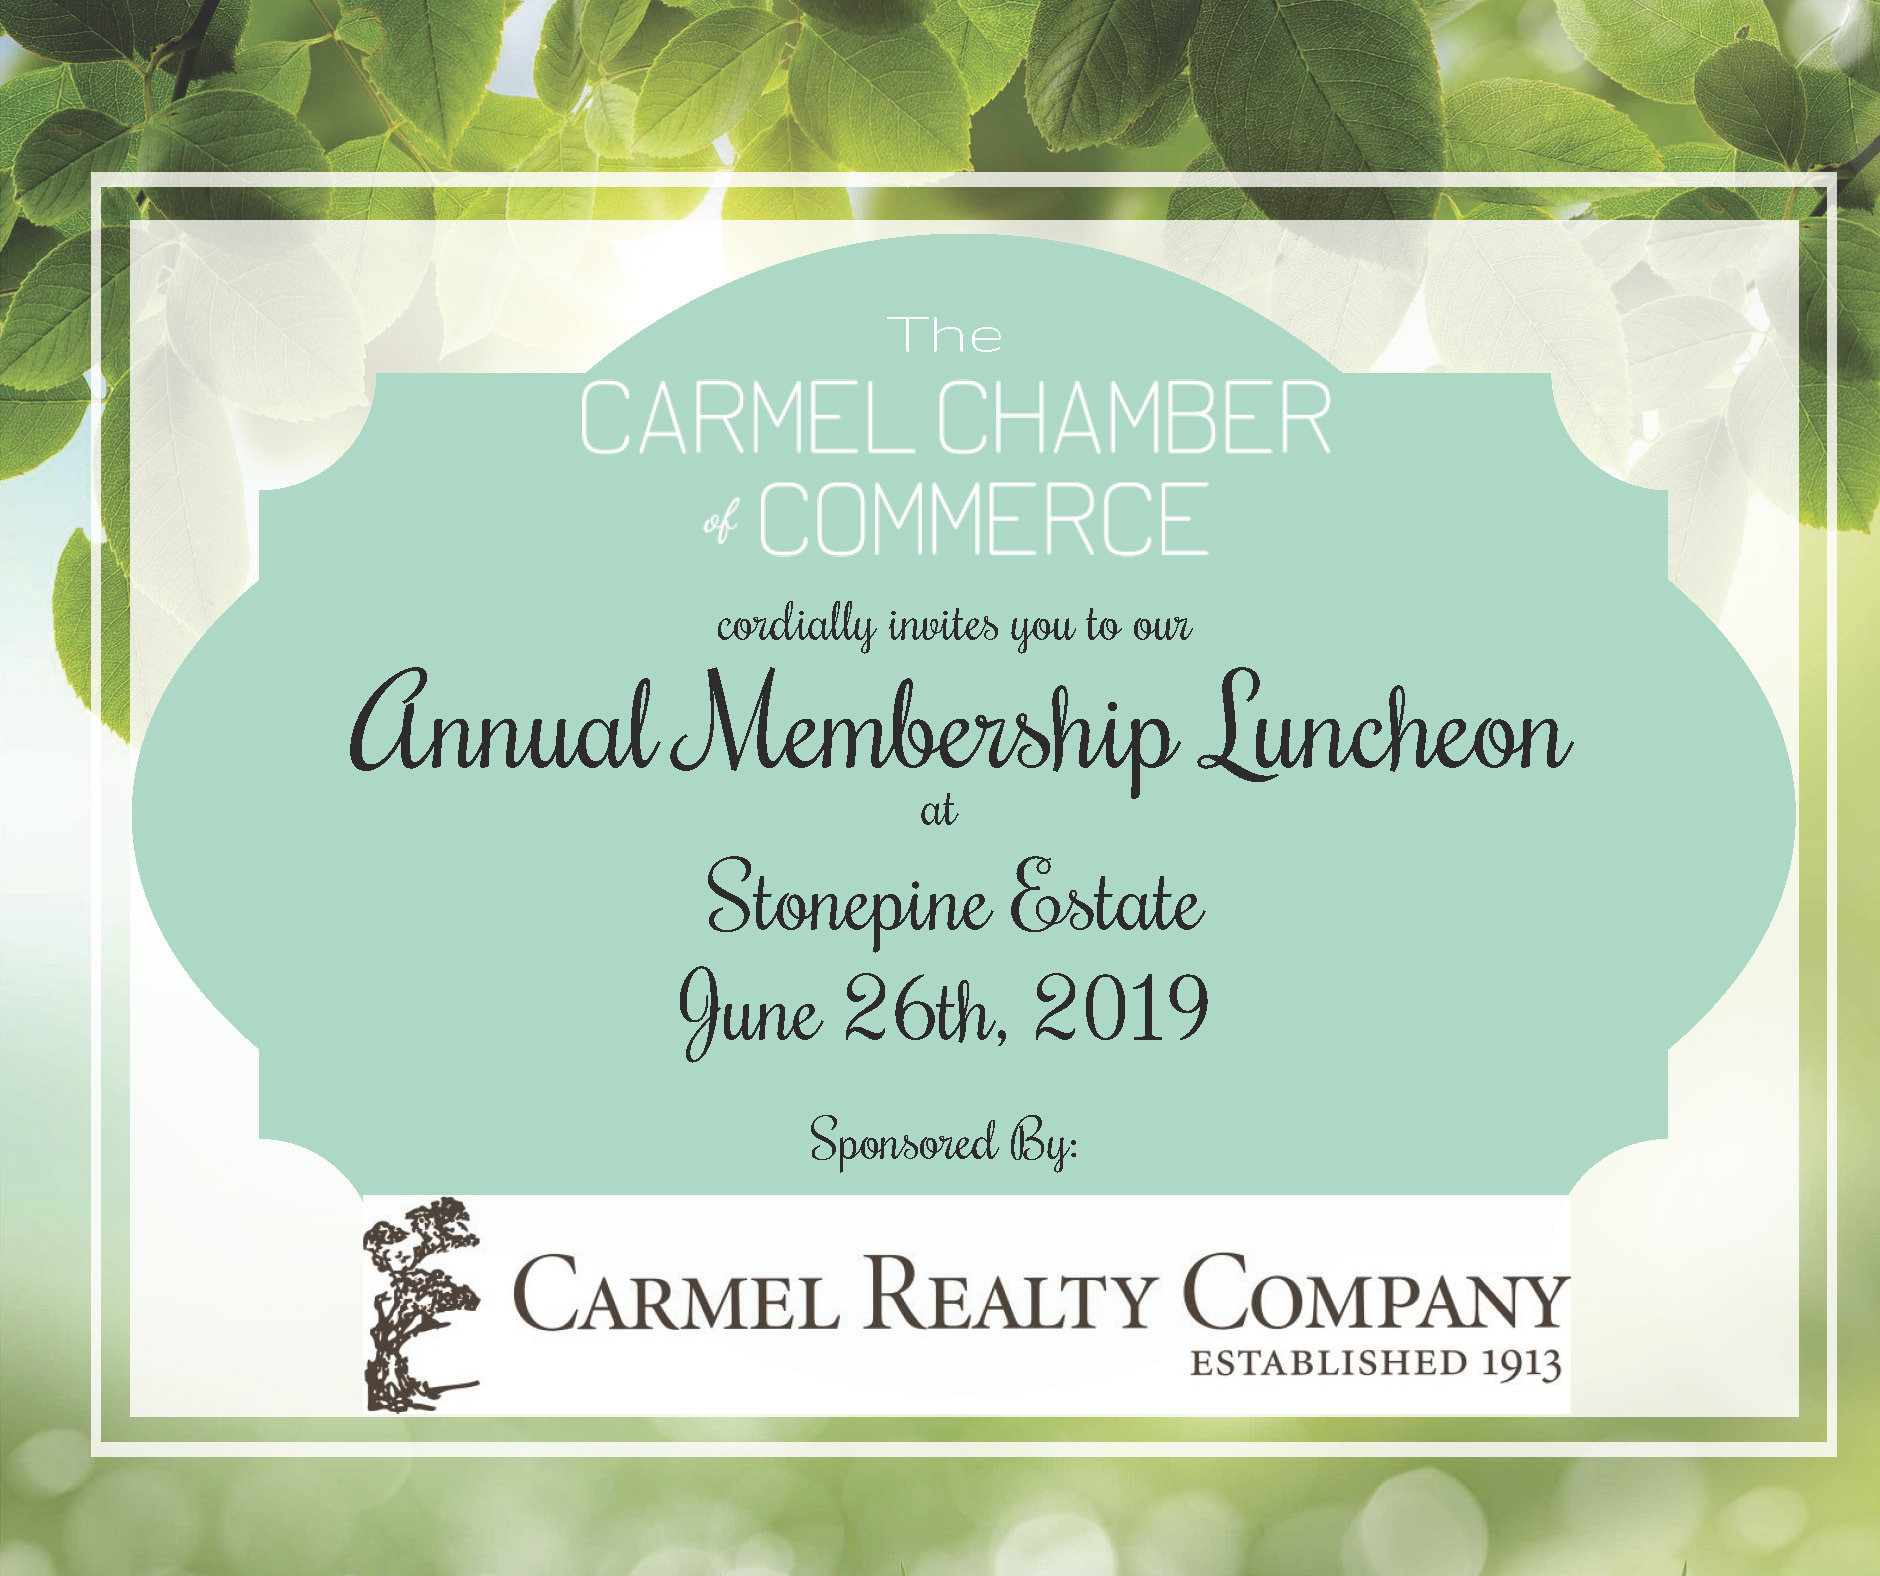 Annual Membership Luncheon